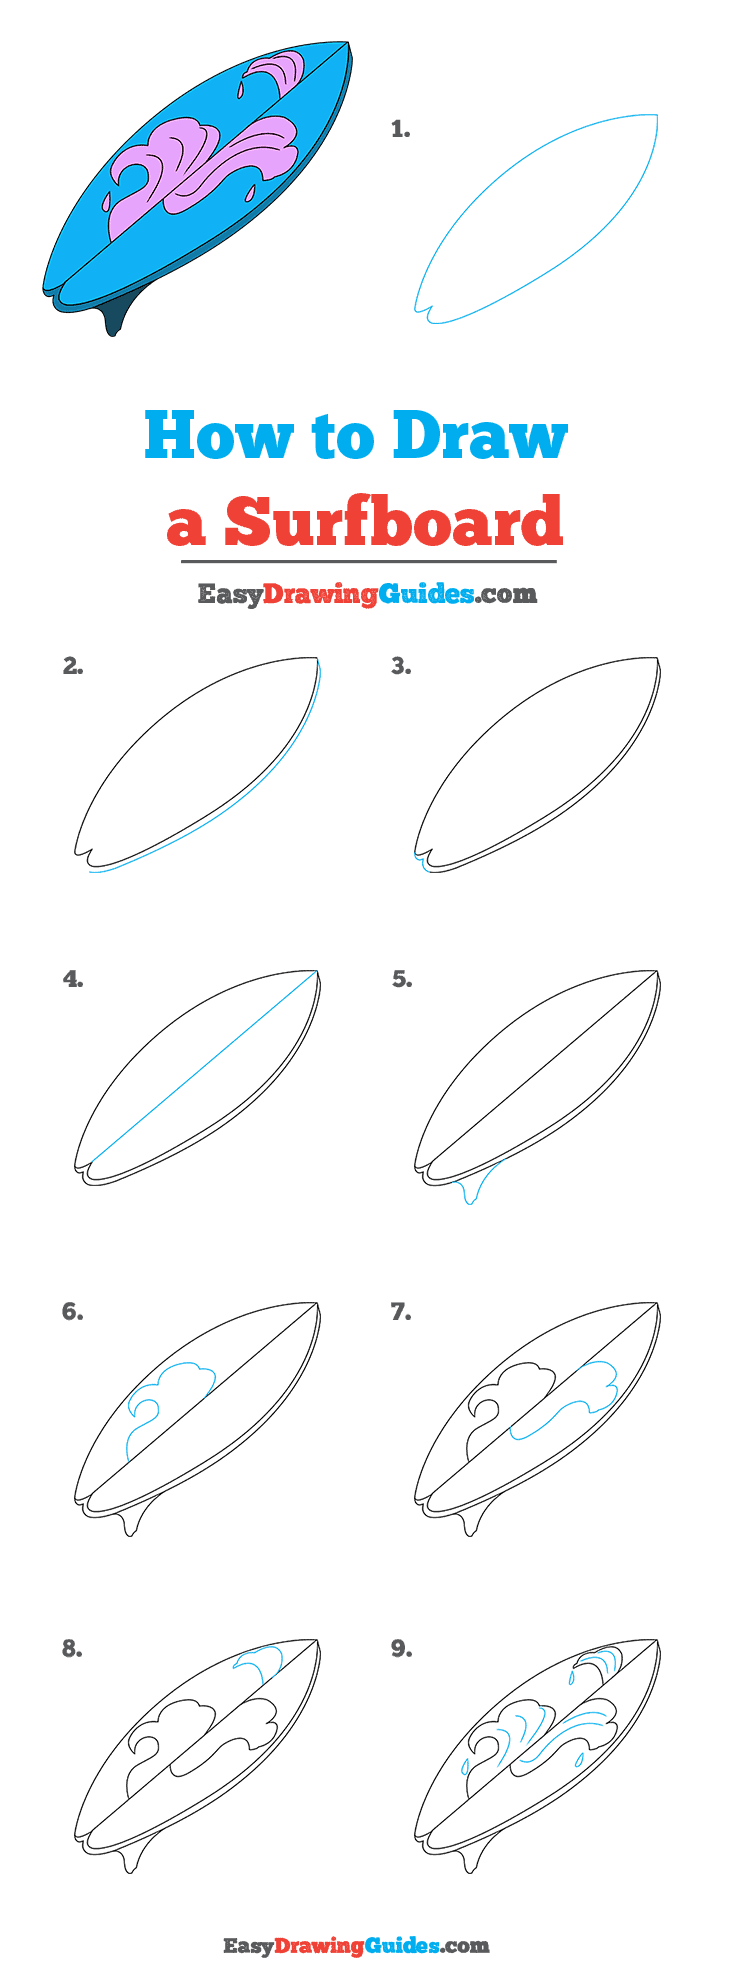 How to Draw a Surfboard Step by Step Tutorial Image